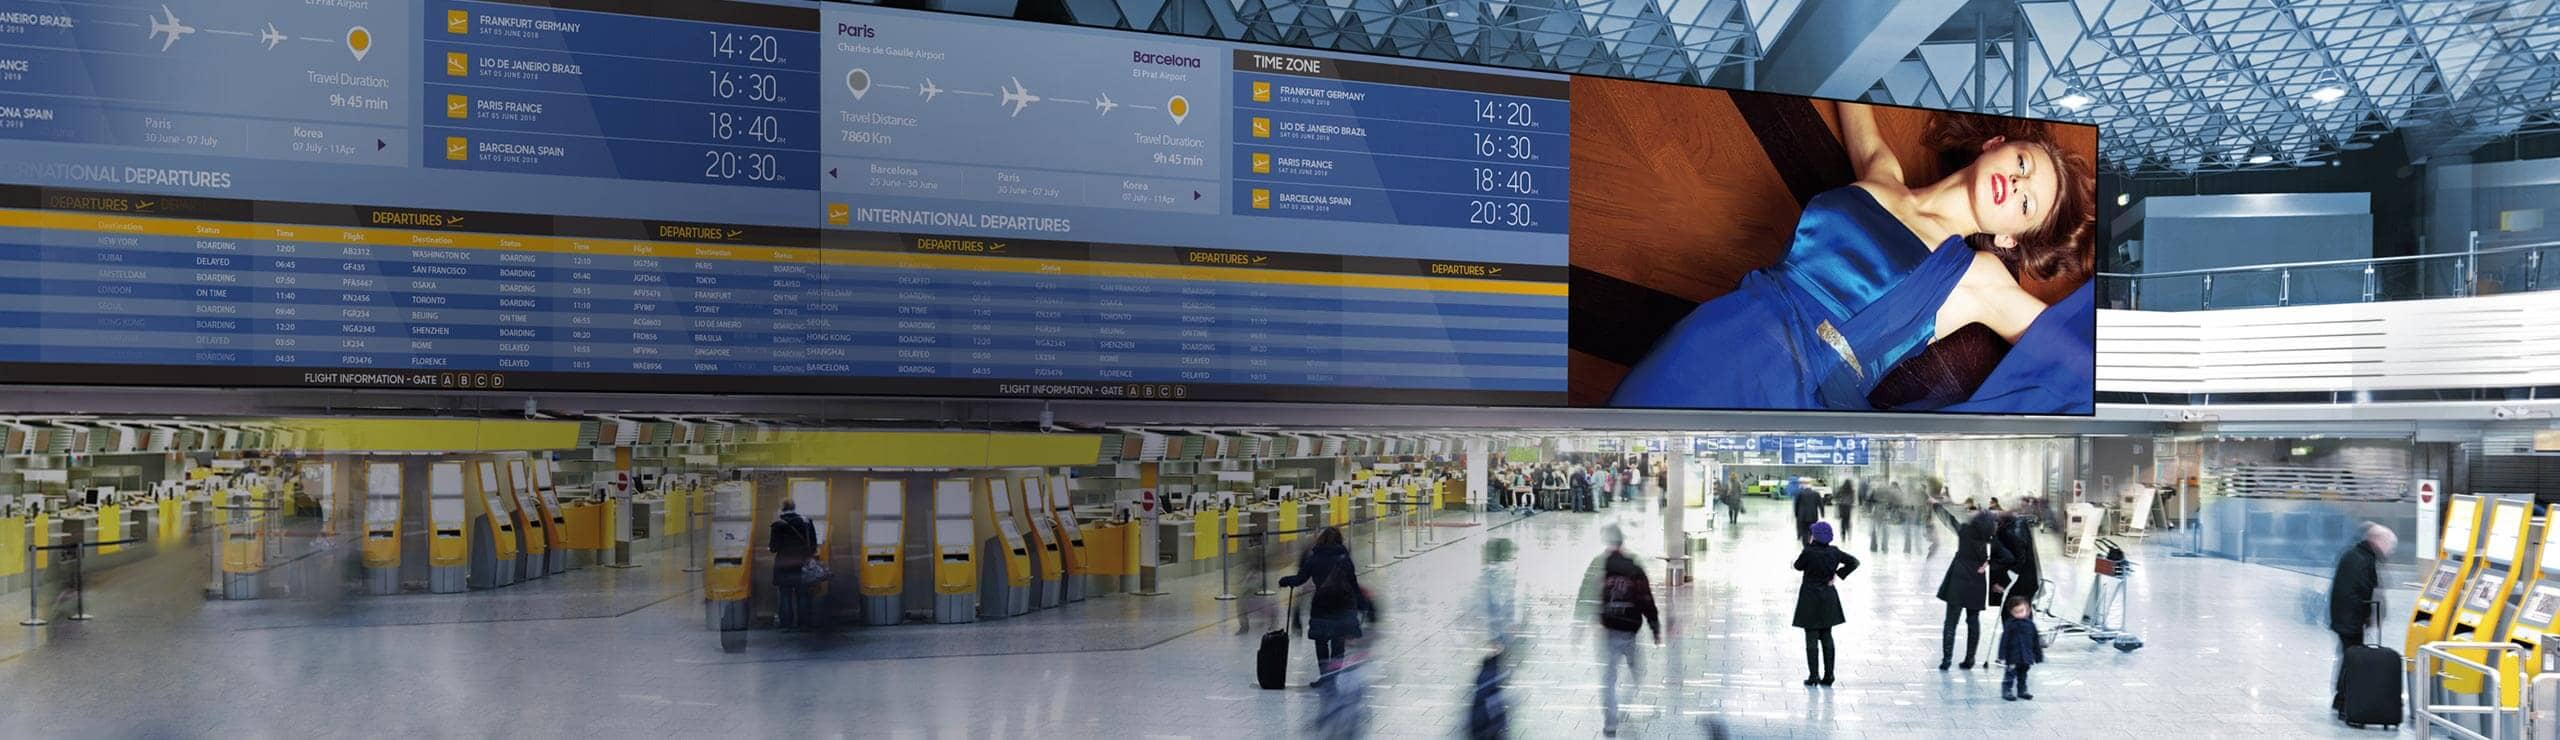 Samsung digital signage for airports